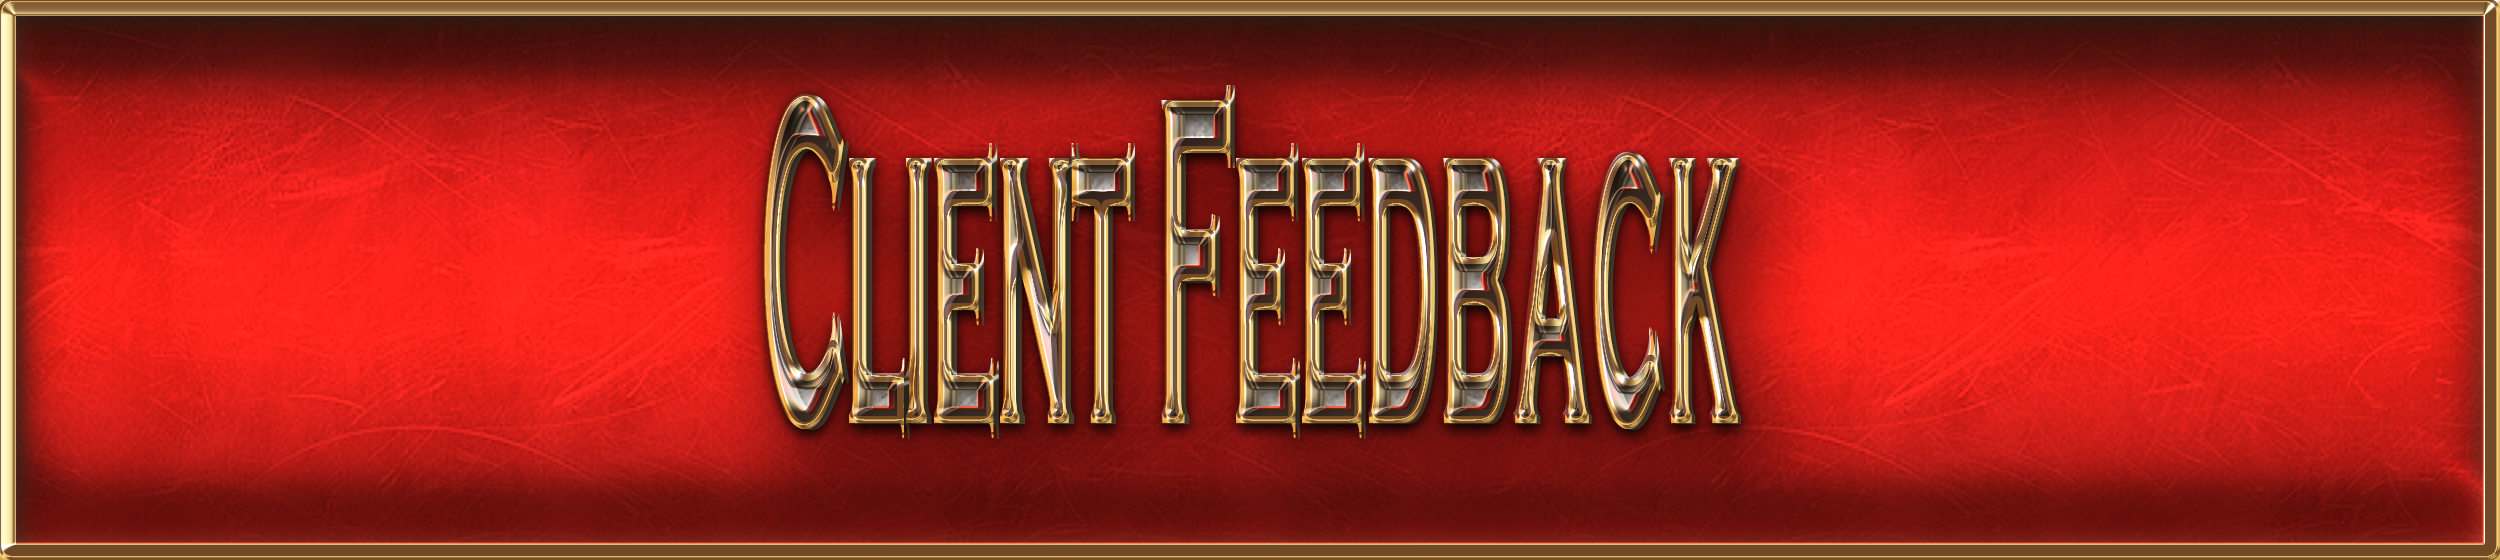 Client-Feedback-Red-BG